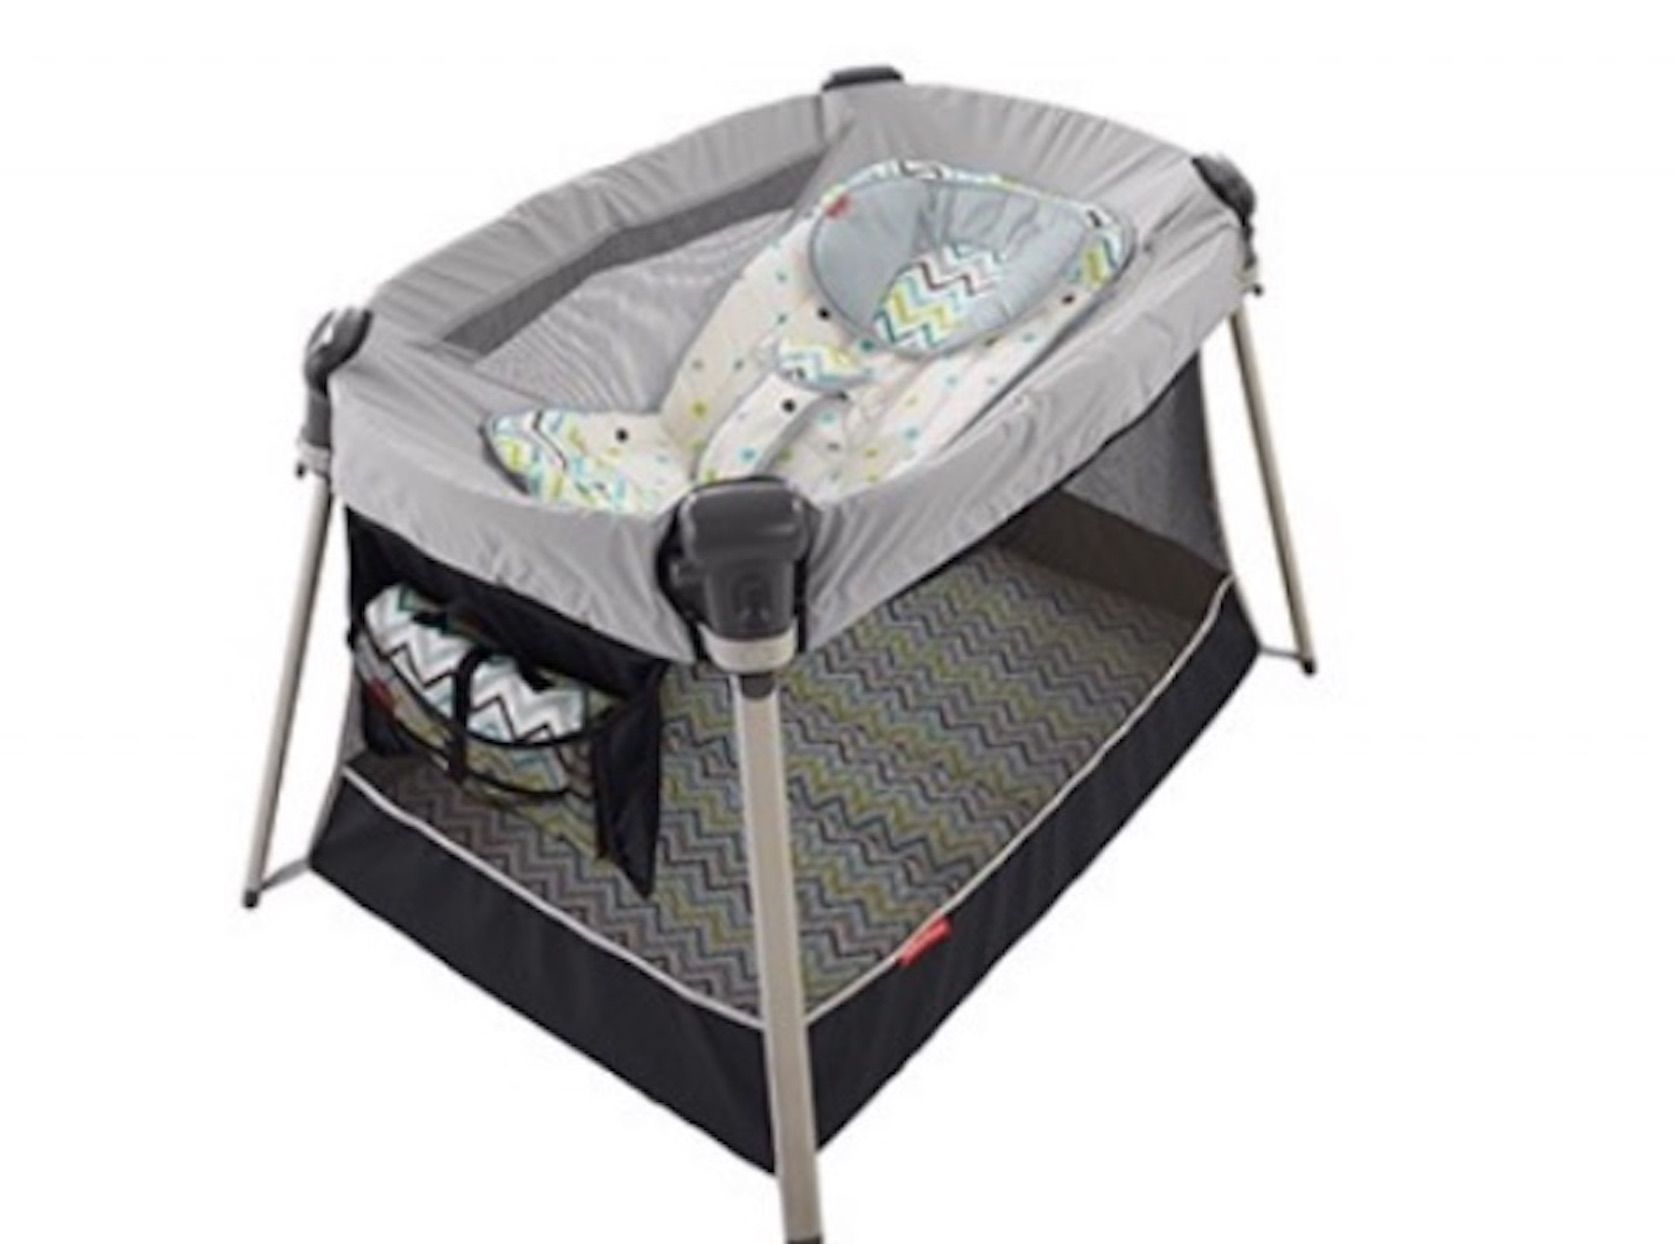 Fisher Price Recalls More Inclined Sleepers Due To Safety Concerns